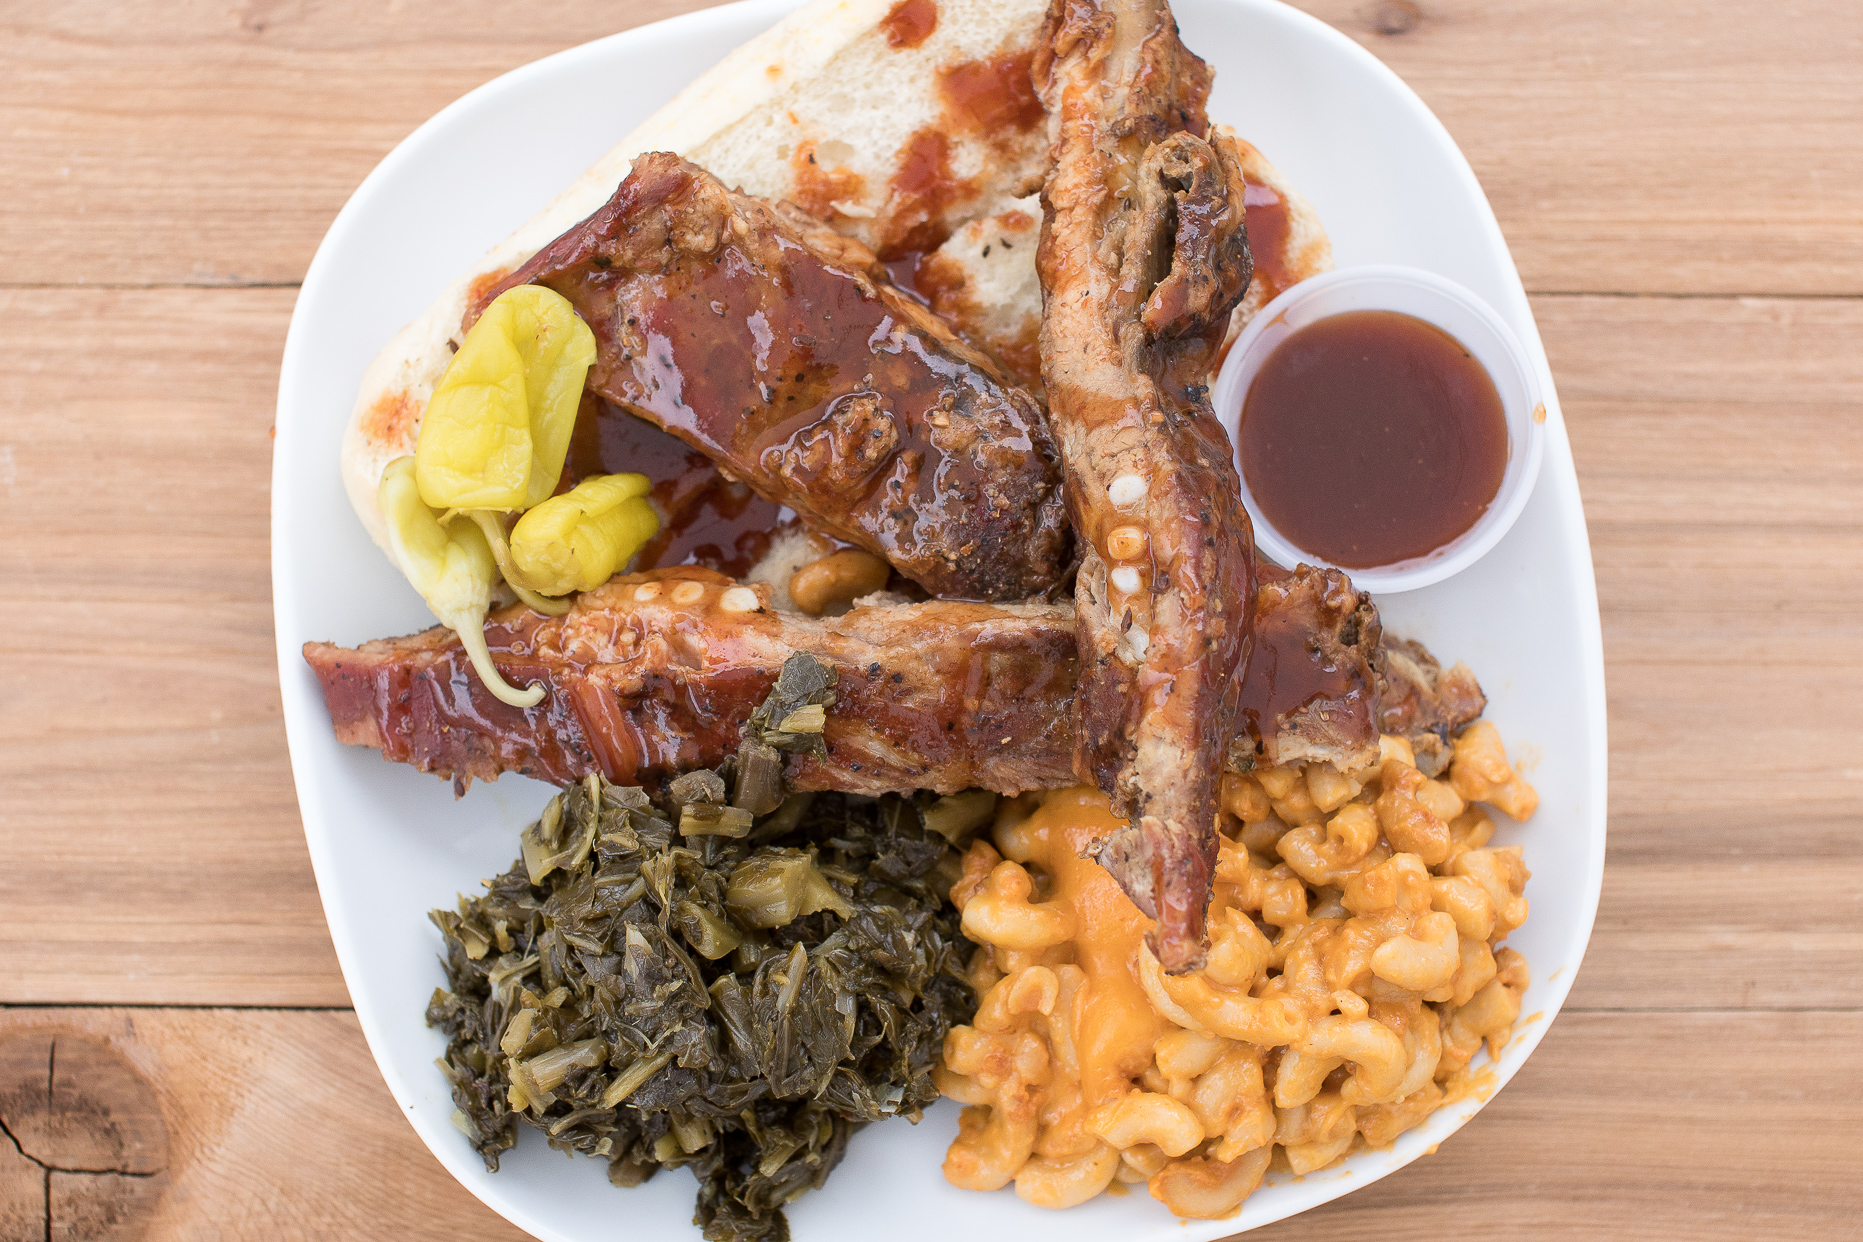 Plate with Ribs, Mac and Cheese, and Greens